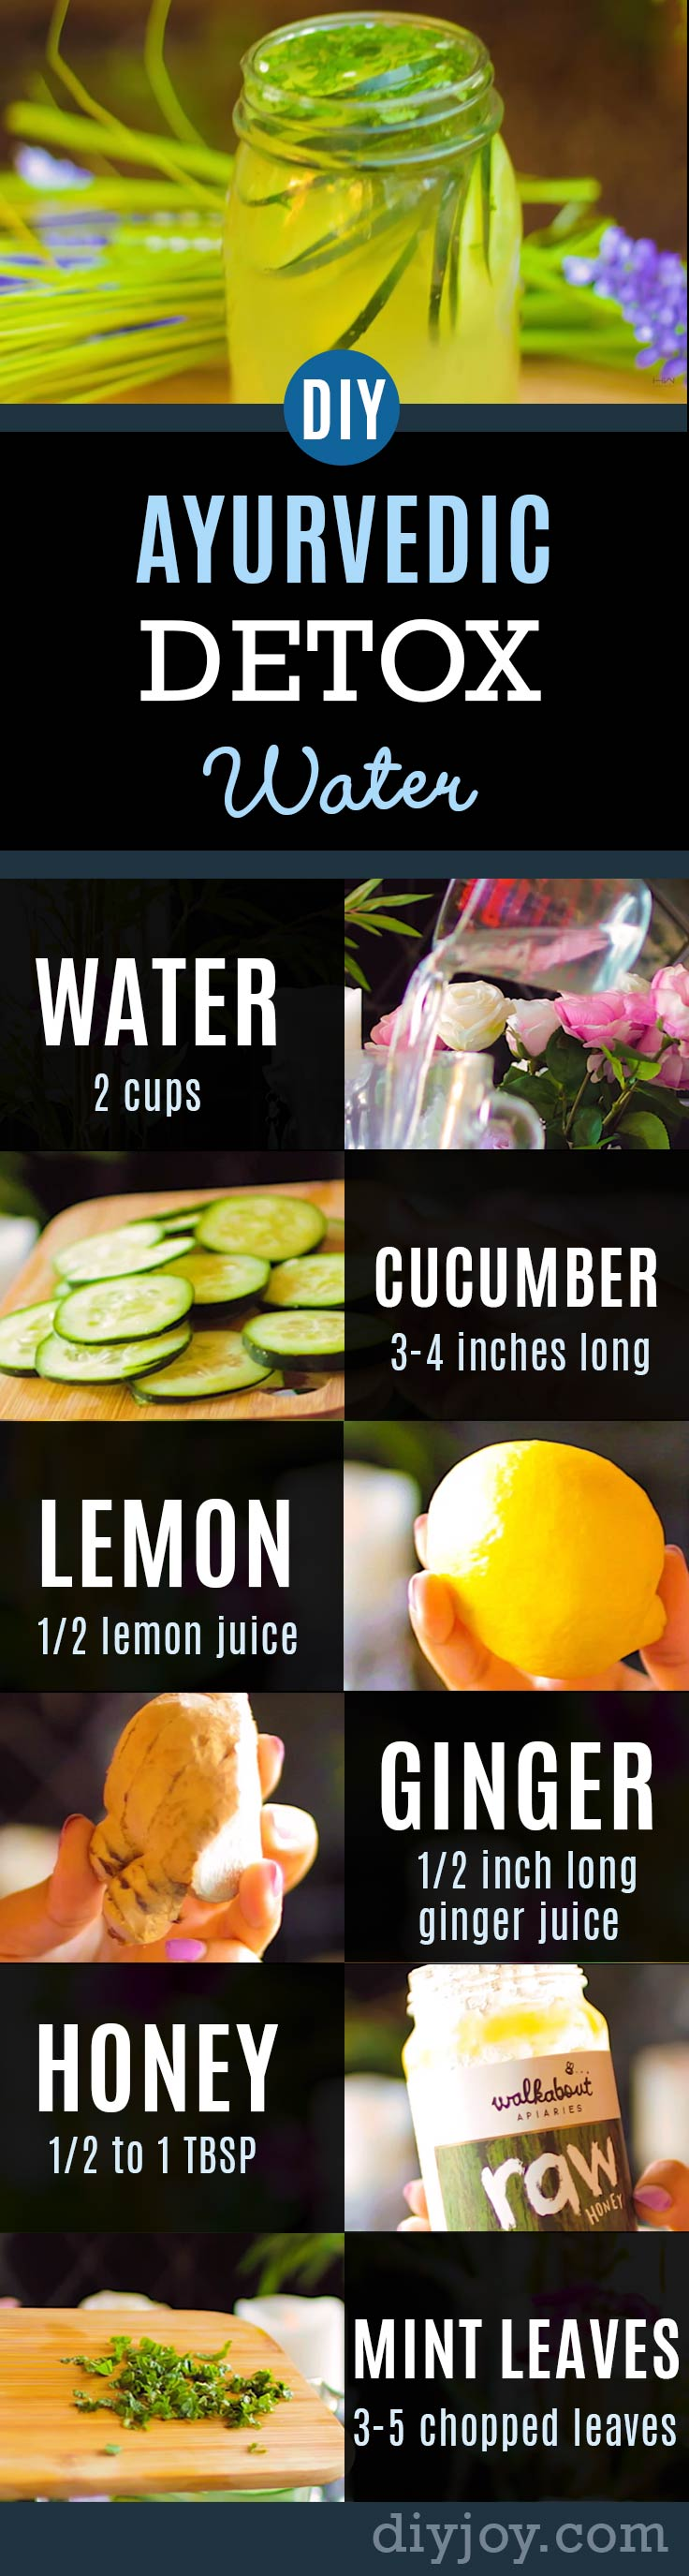 Ayurvedic Detox Water | Weight Loss